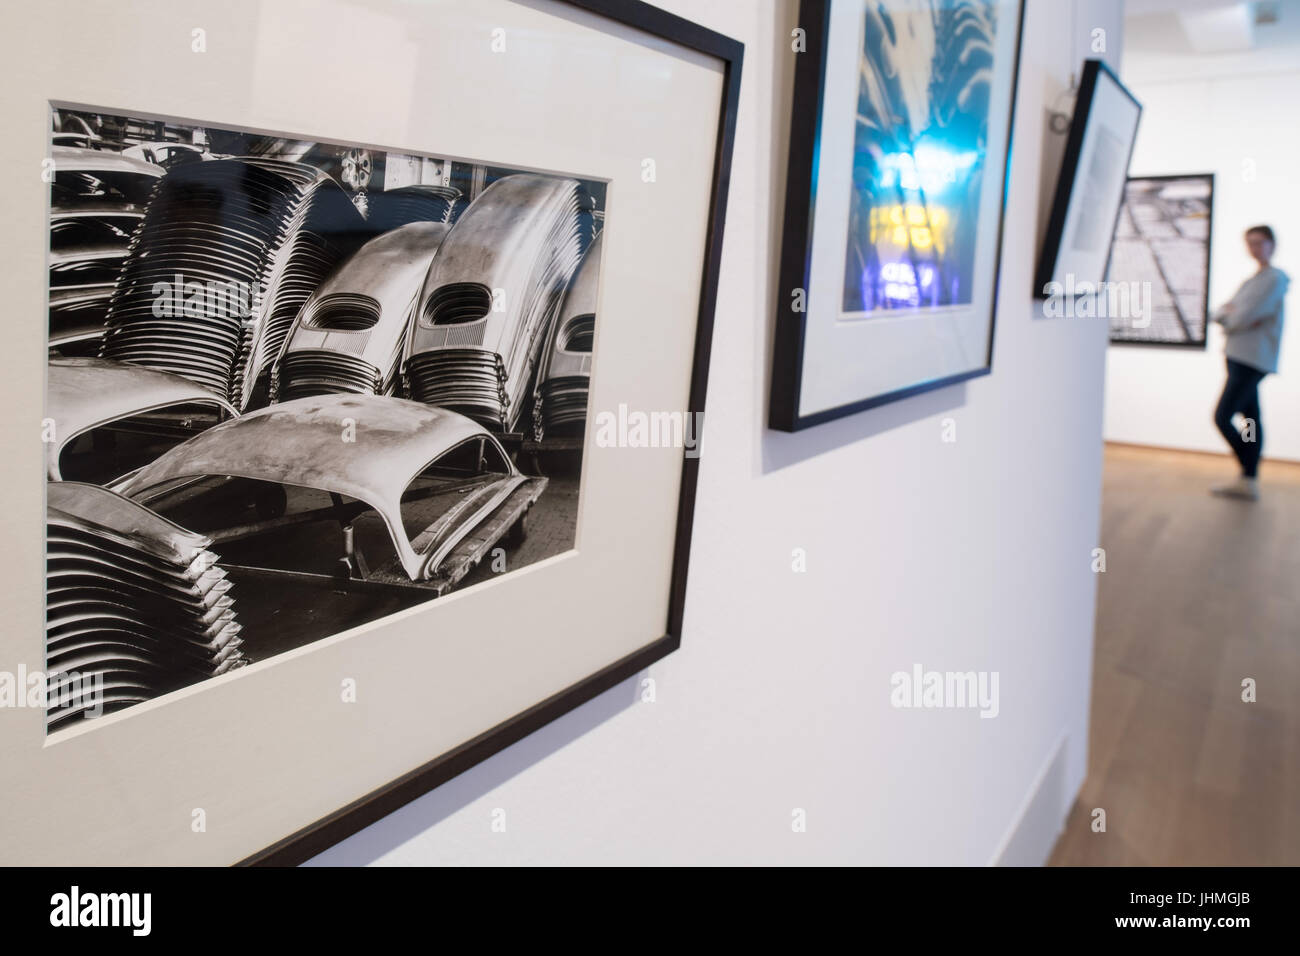 Fine arts industrial photographies from the 1950s show the production of the VW Beetle at the Kunsthalle (Arts - Stock Image